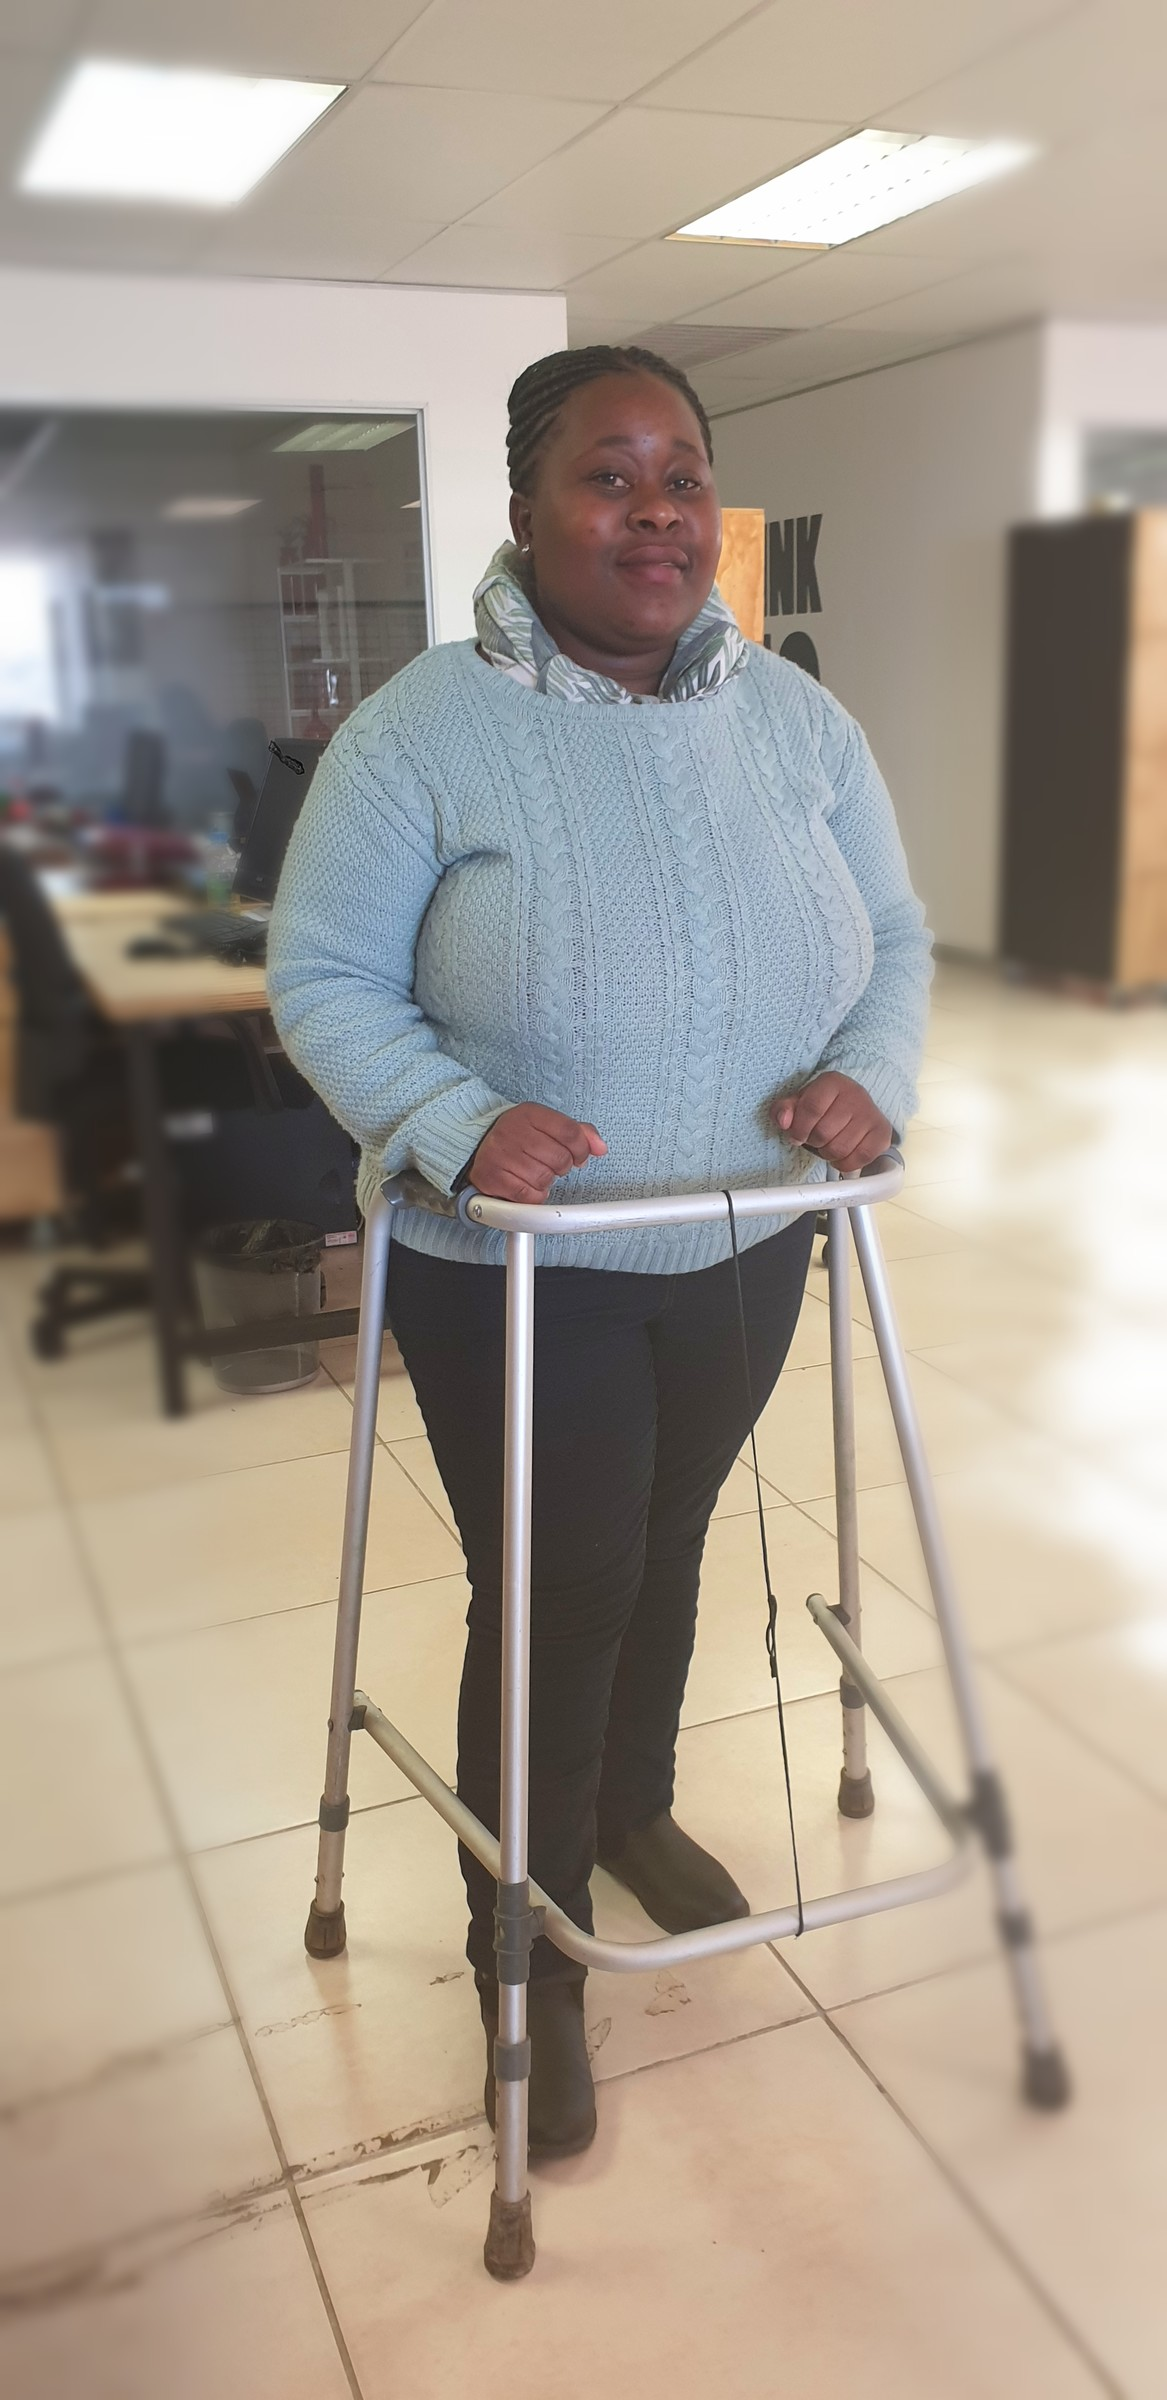 Mpho sharing her happy vibes at the office